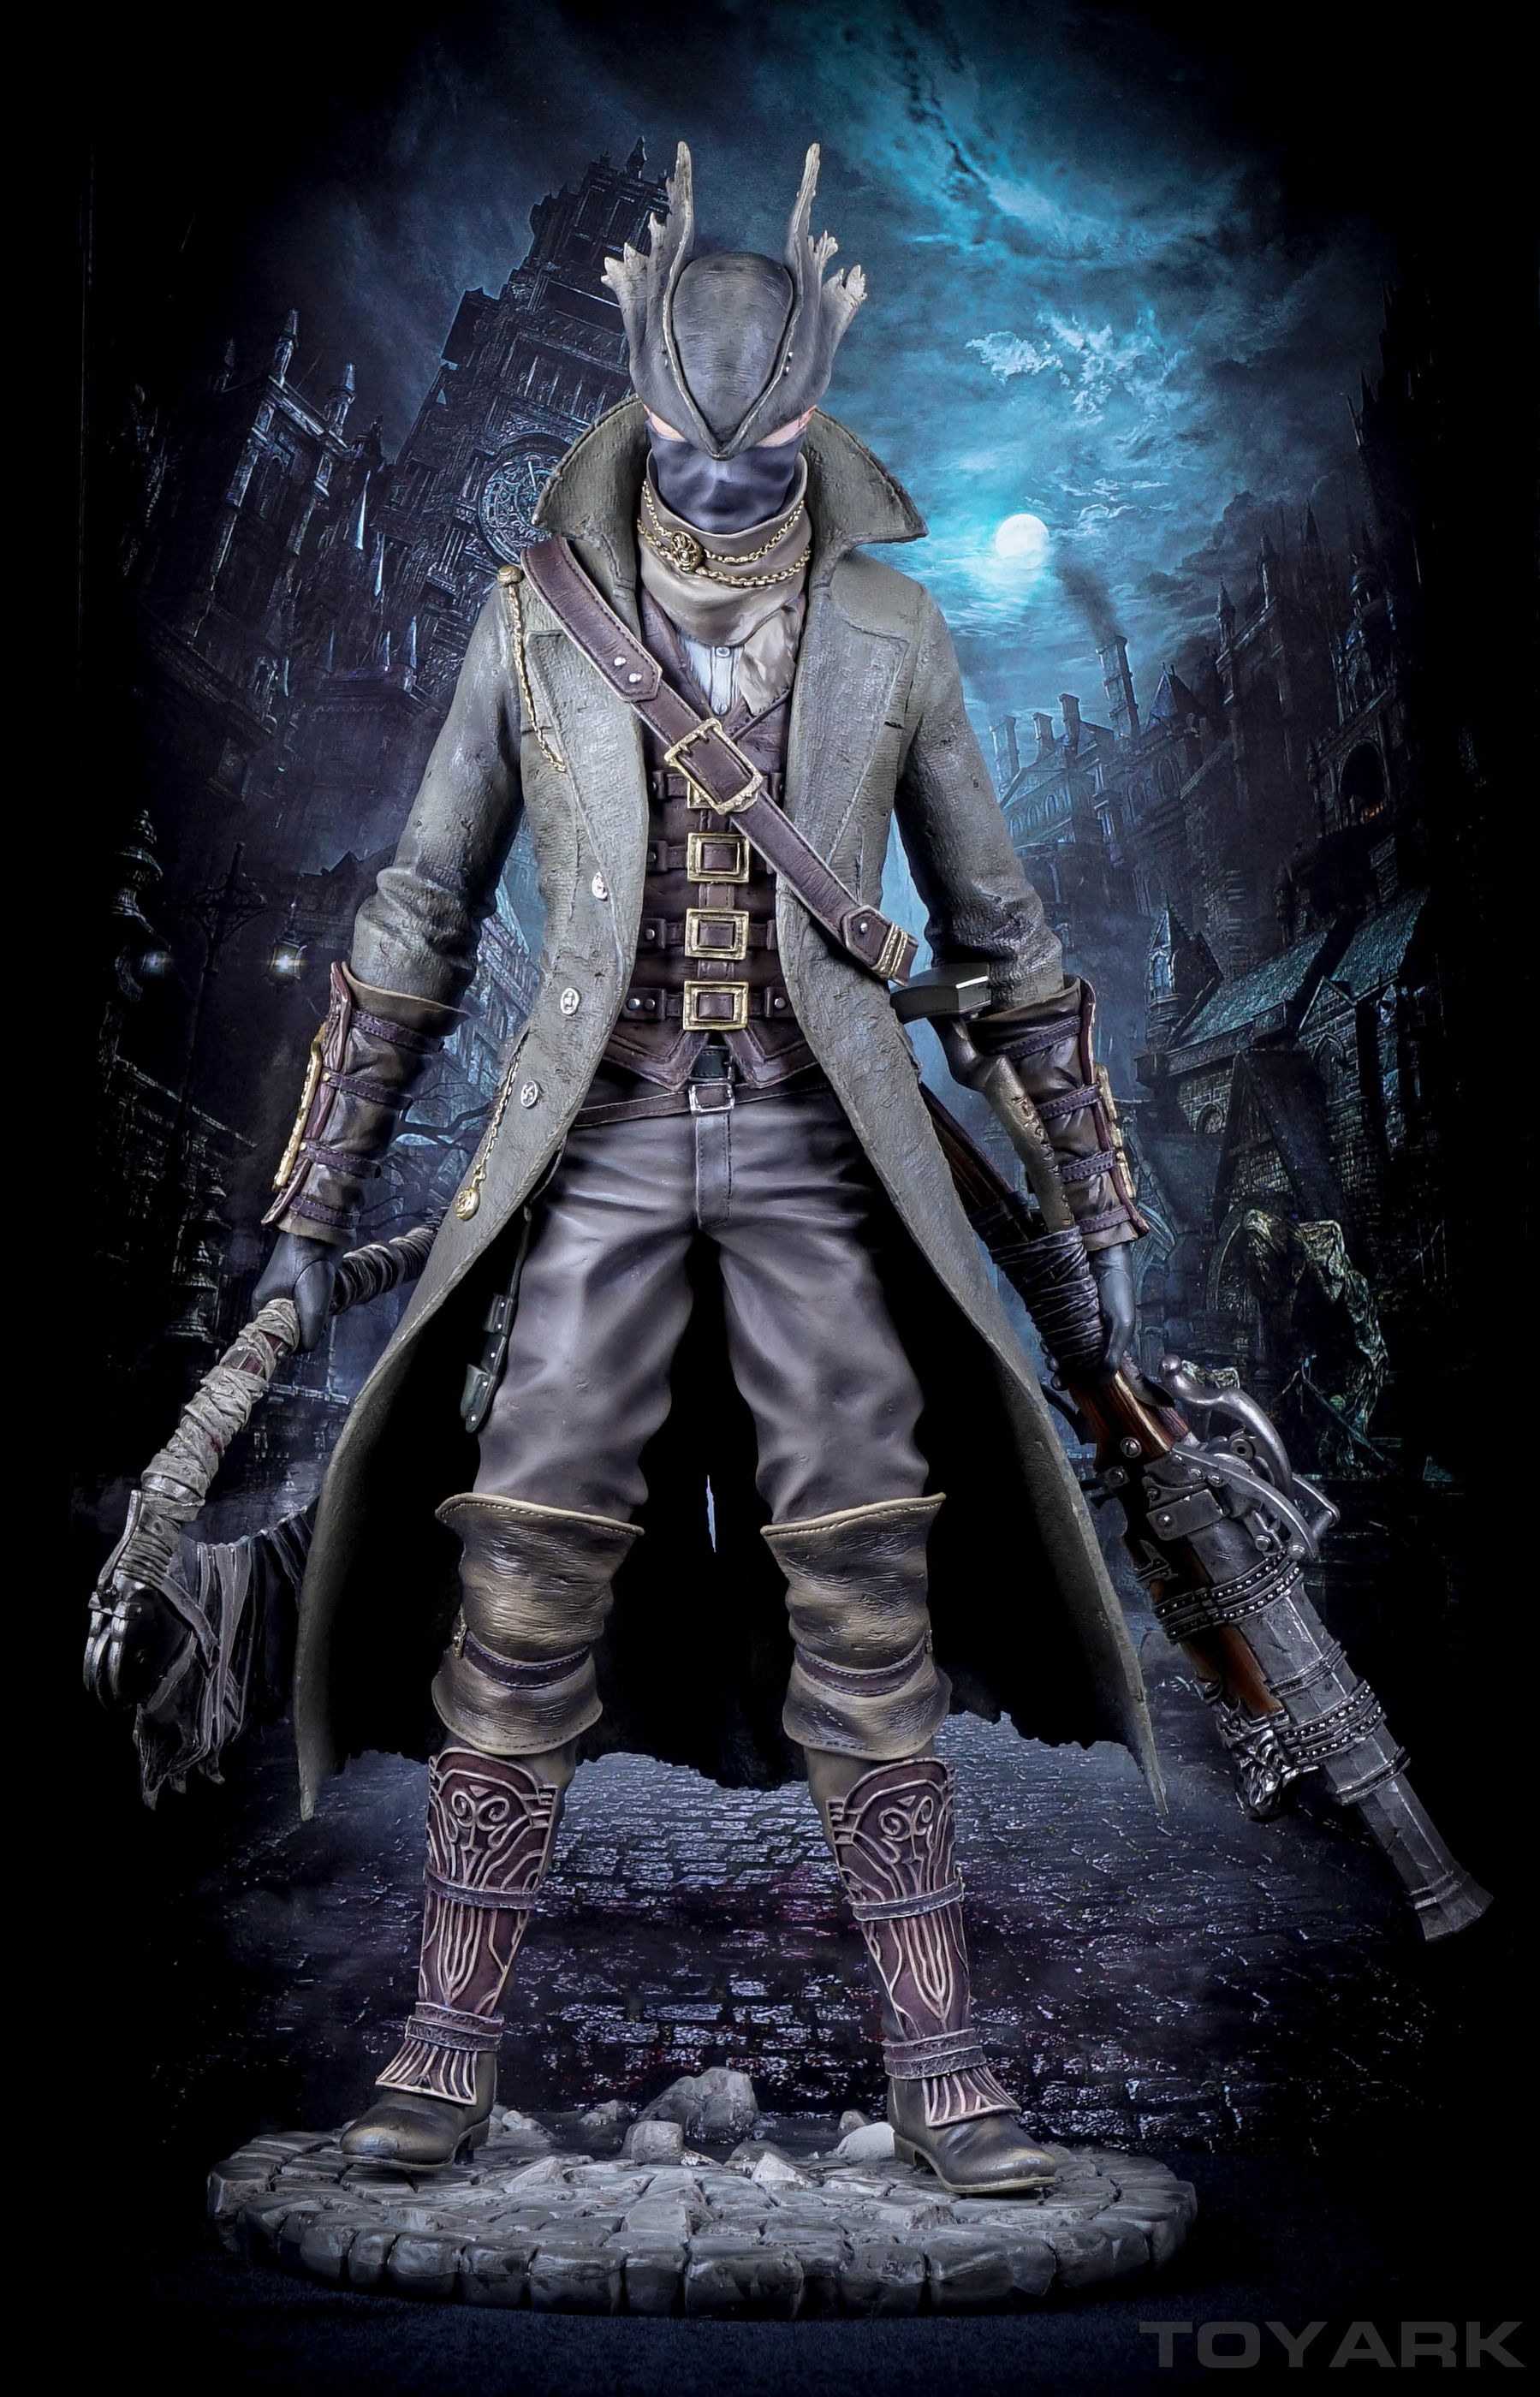 http://news.toyark.com/wp-content/uploads/sites/4/2016/01/Gecco-Hunter-bloodborne-008.jpg